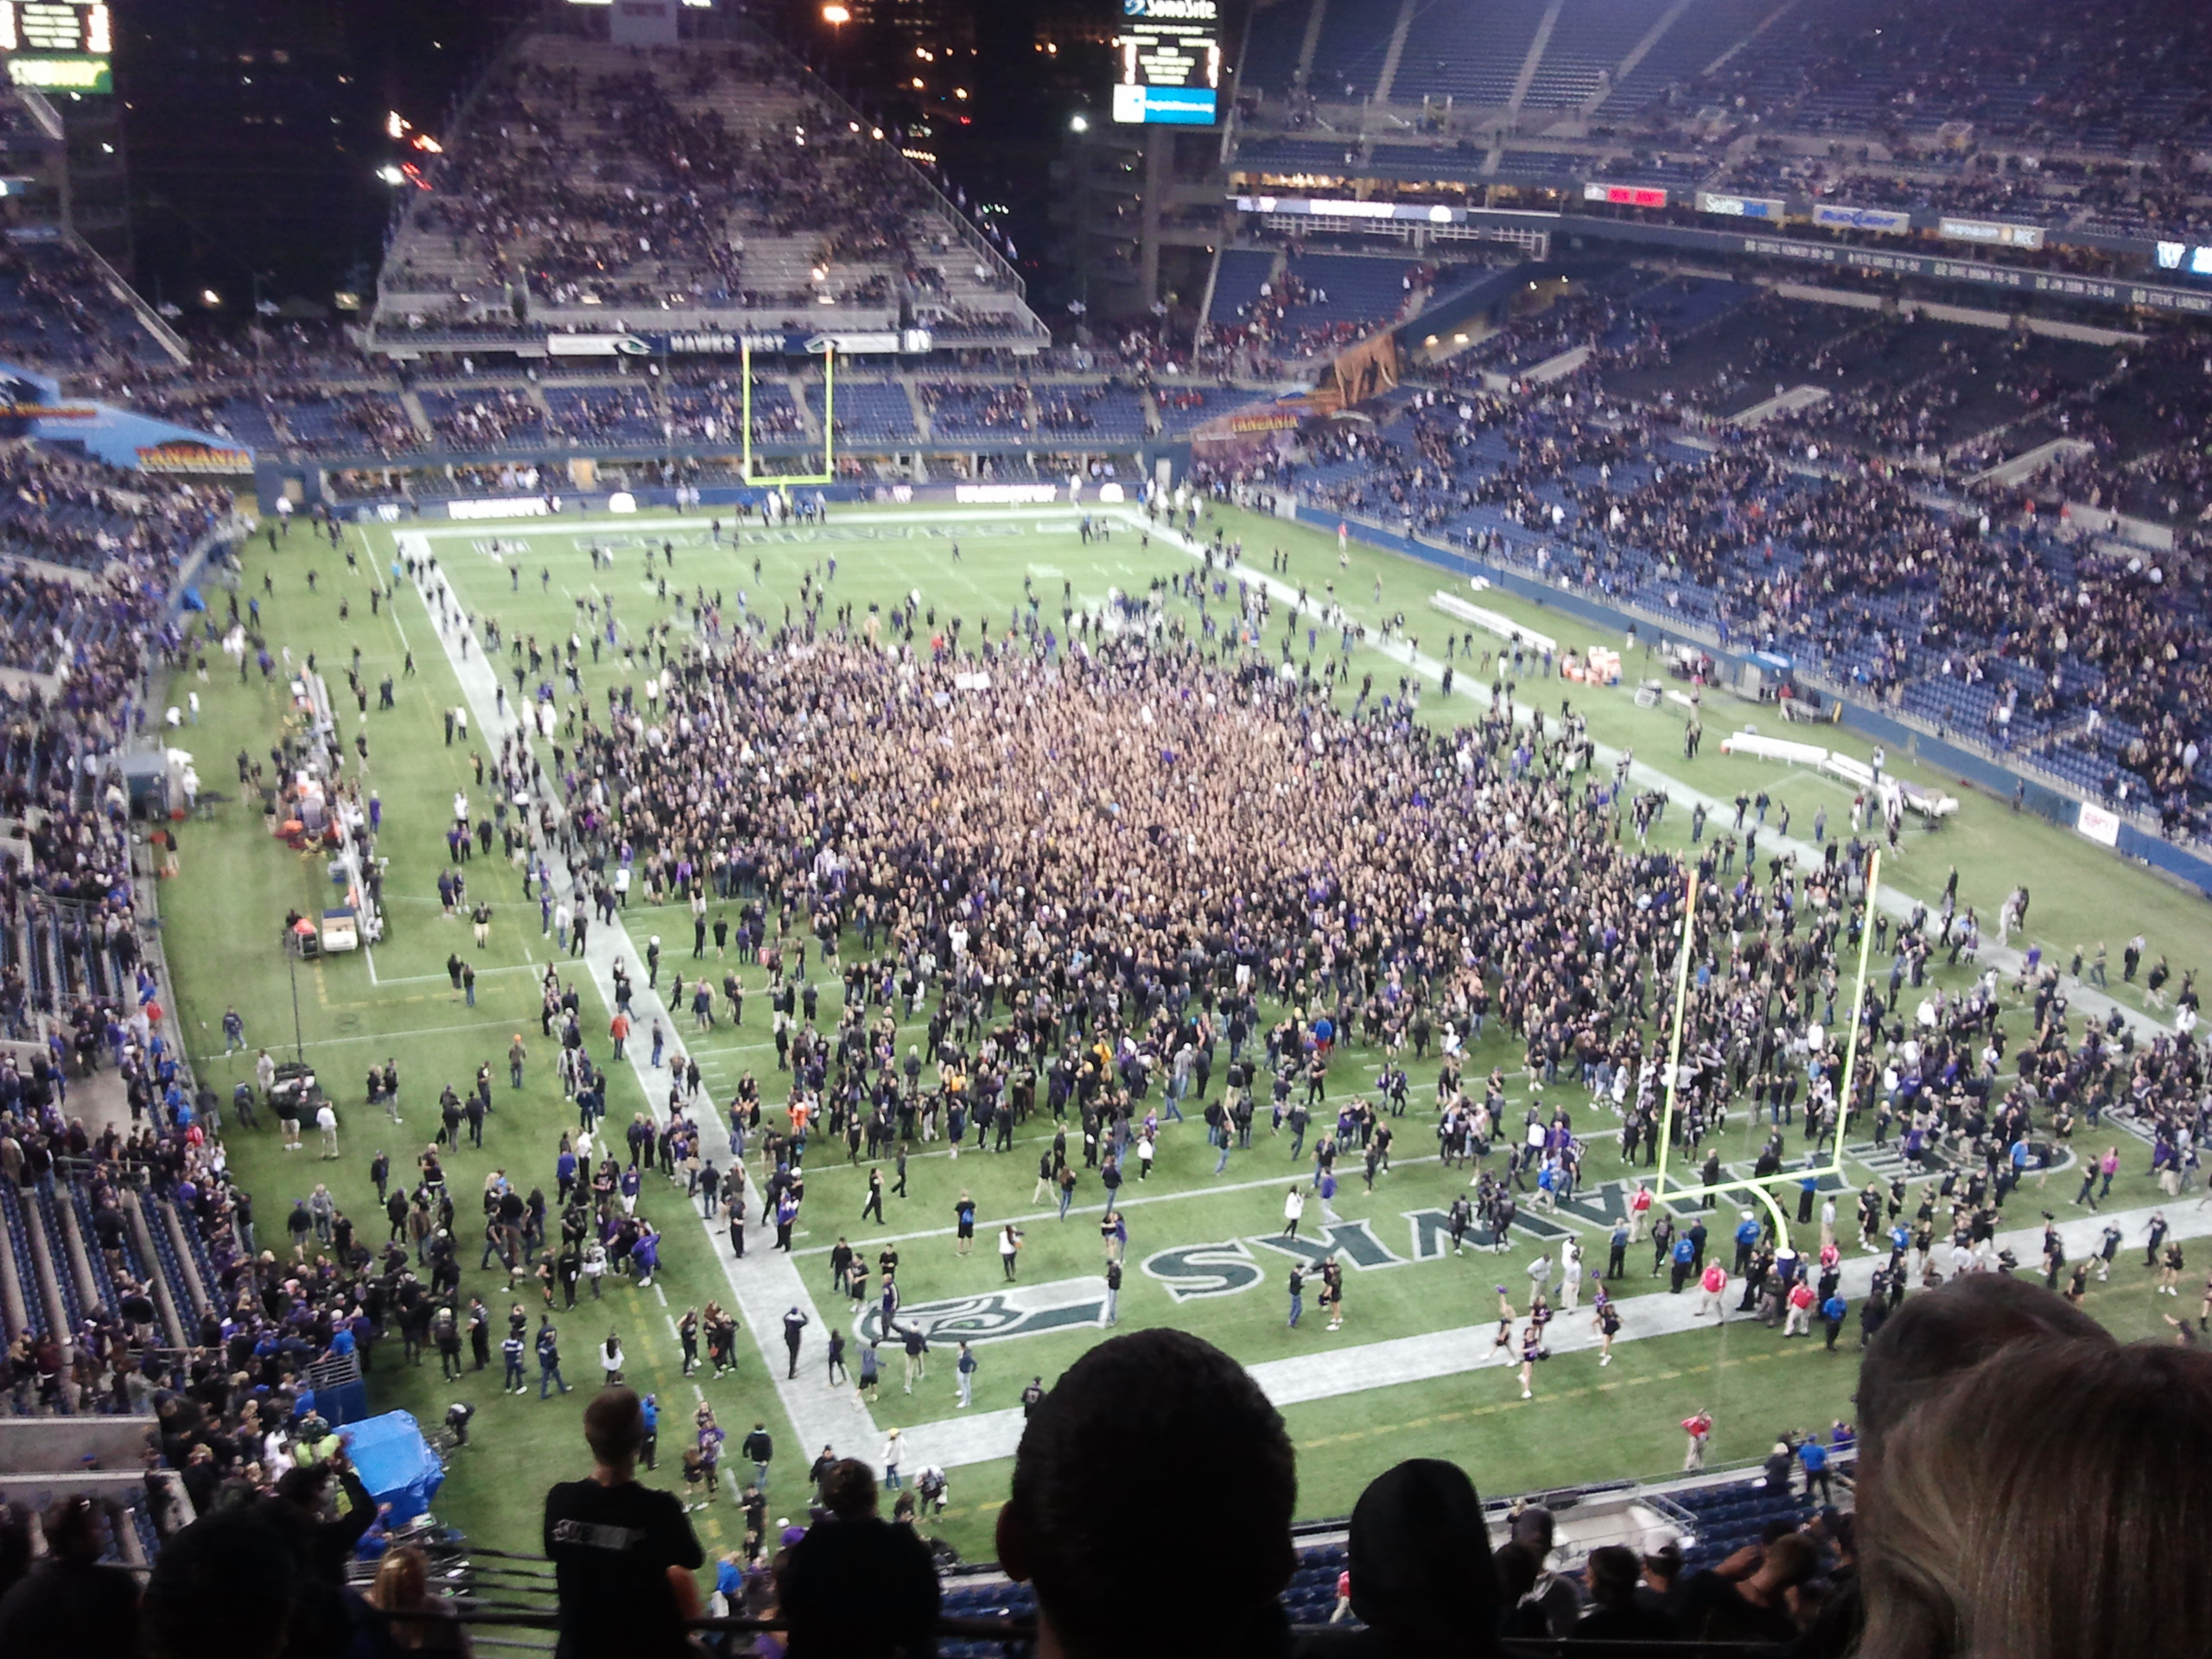 Husky fans storm the field after Thursday's upset of No. 8 Stanford.